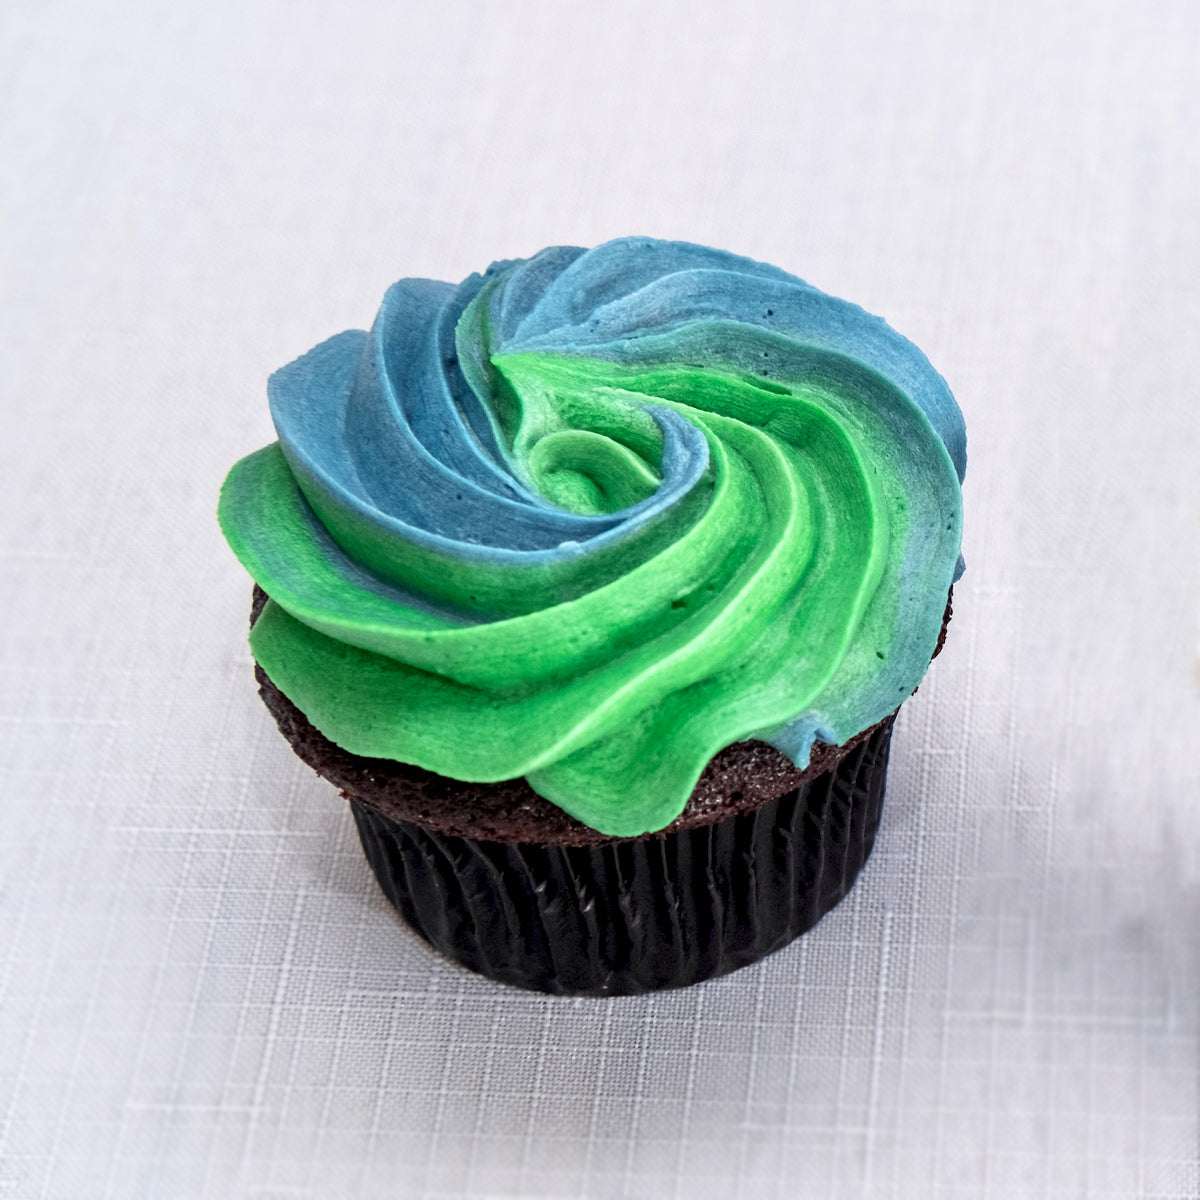 Solid or Swirled Graduation Cupcake